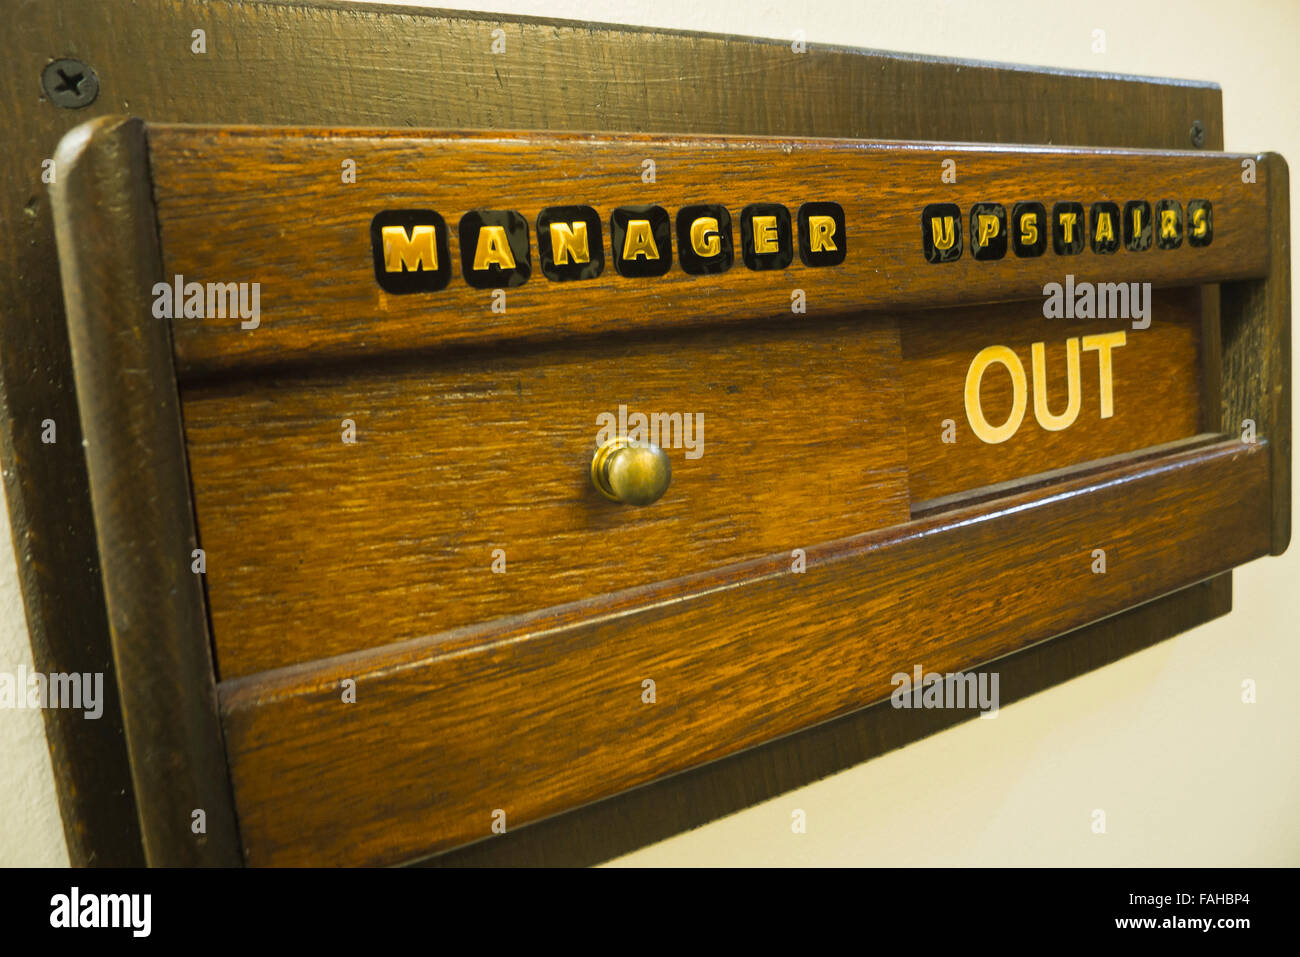 Wooden sliding sign 'MANAGER UPSTAIRS OUT'. - Stock Image